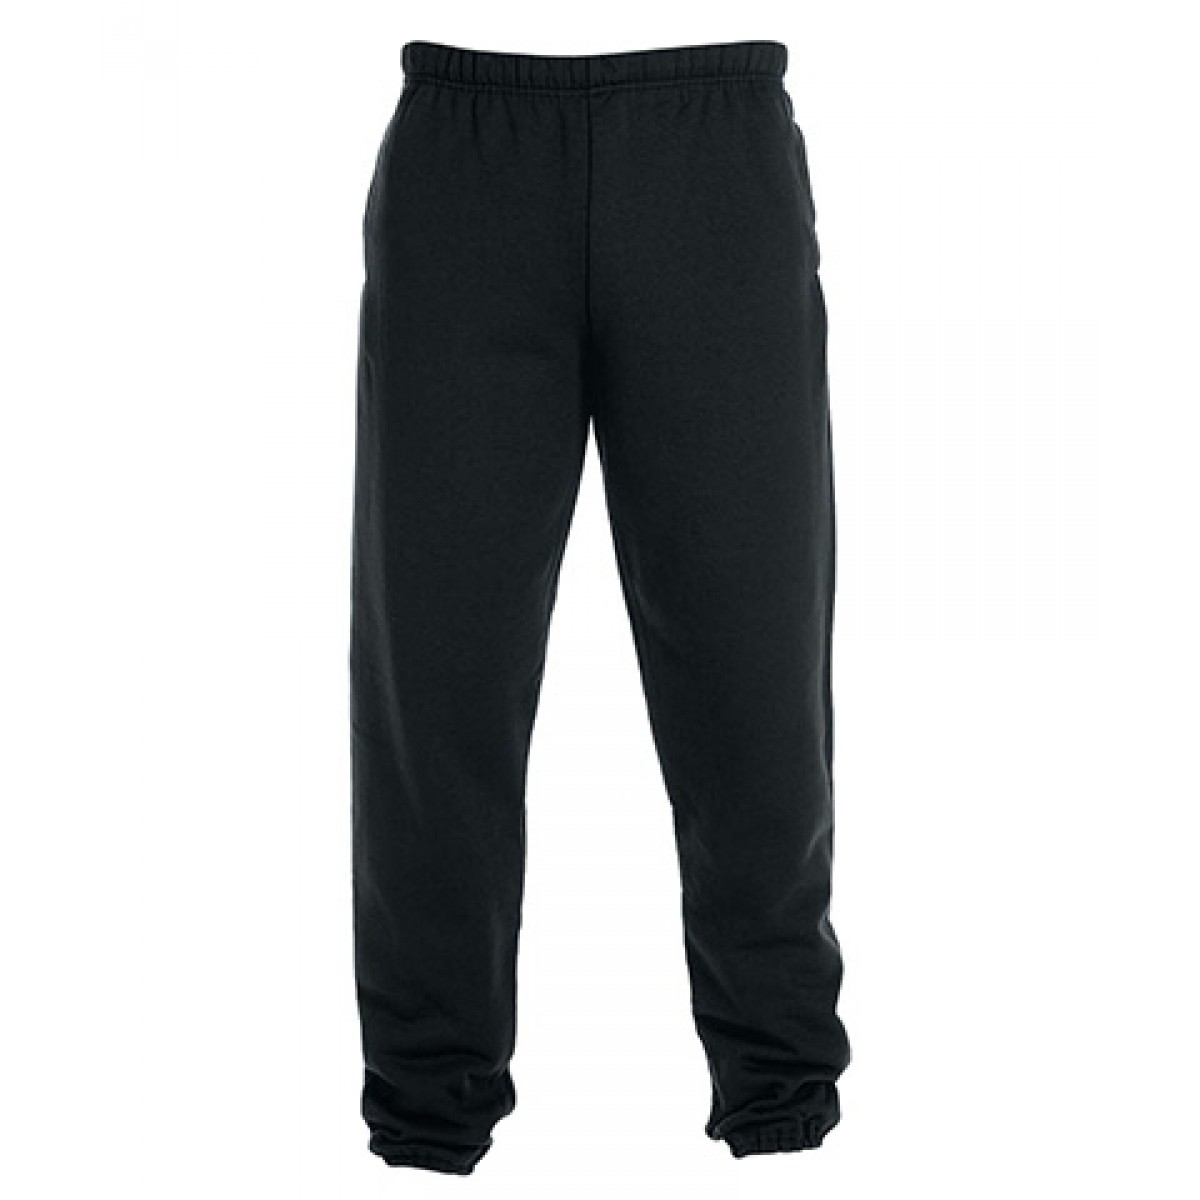 Fleece Pocketed Sweatpants-Black-L